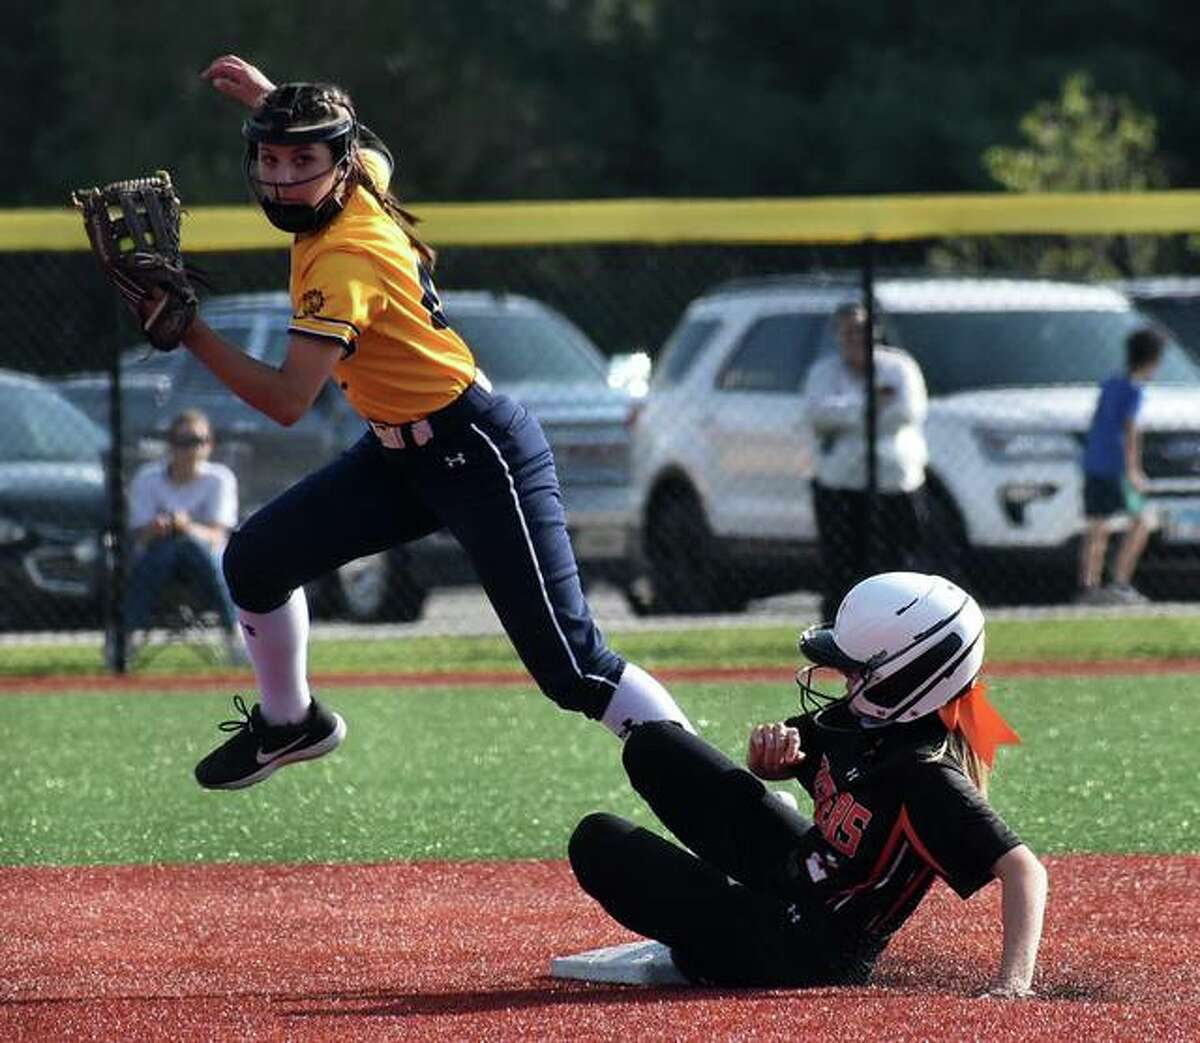 O'Fallon second baseman Ryah Baglia forces out Edwardsville's Grace Blakemore at second base in the fifth inning.